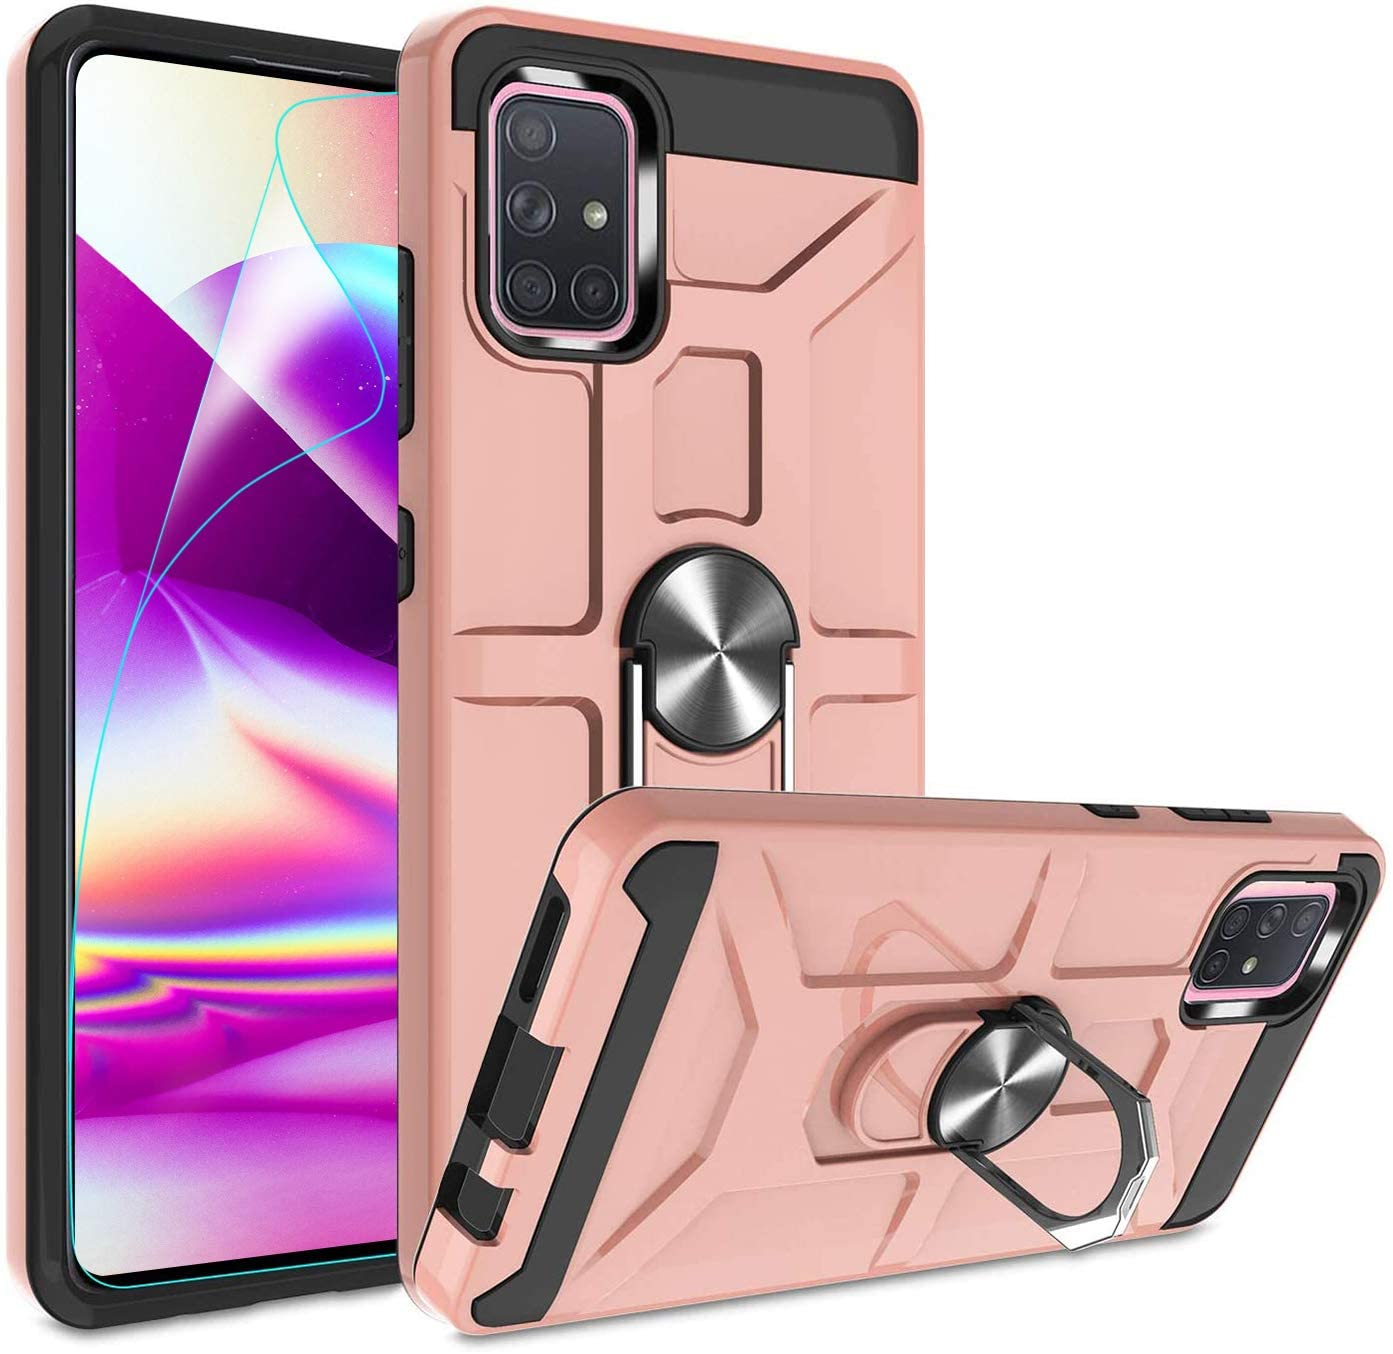 N\A A71 5G Phone case for Samsung Galaxy(Not for A71 5G Ultra Wideband Verizon and A71 4G) with 360°Rotating Metal Ring Bracket and Free HD Screen Protection Film and with Soft TPU.(Rose Gold)